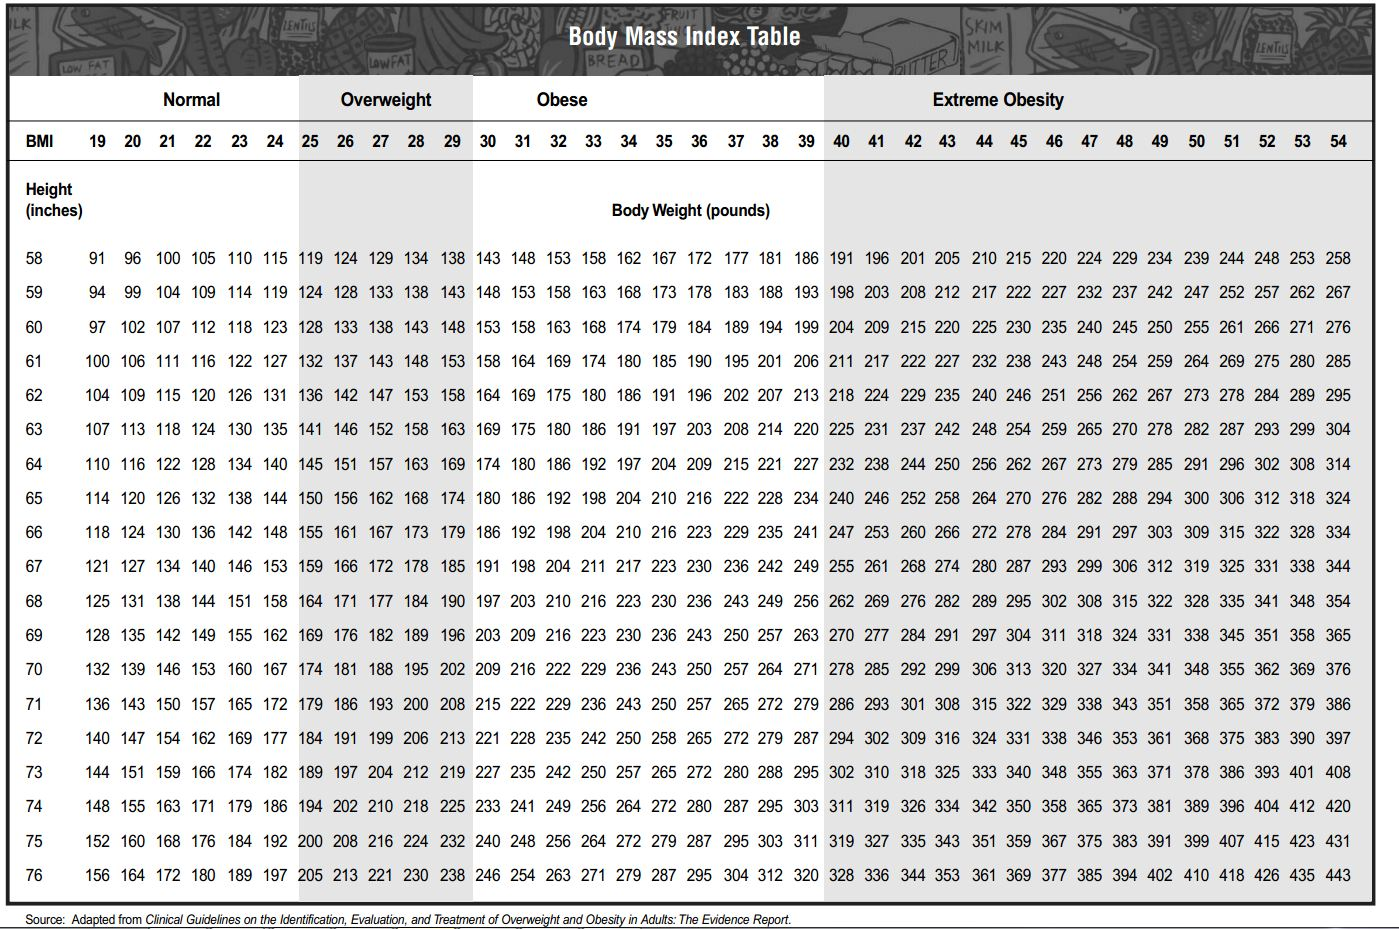 Body mass index calculator kathy smith share this nvjuhfo Gallery